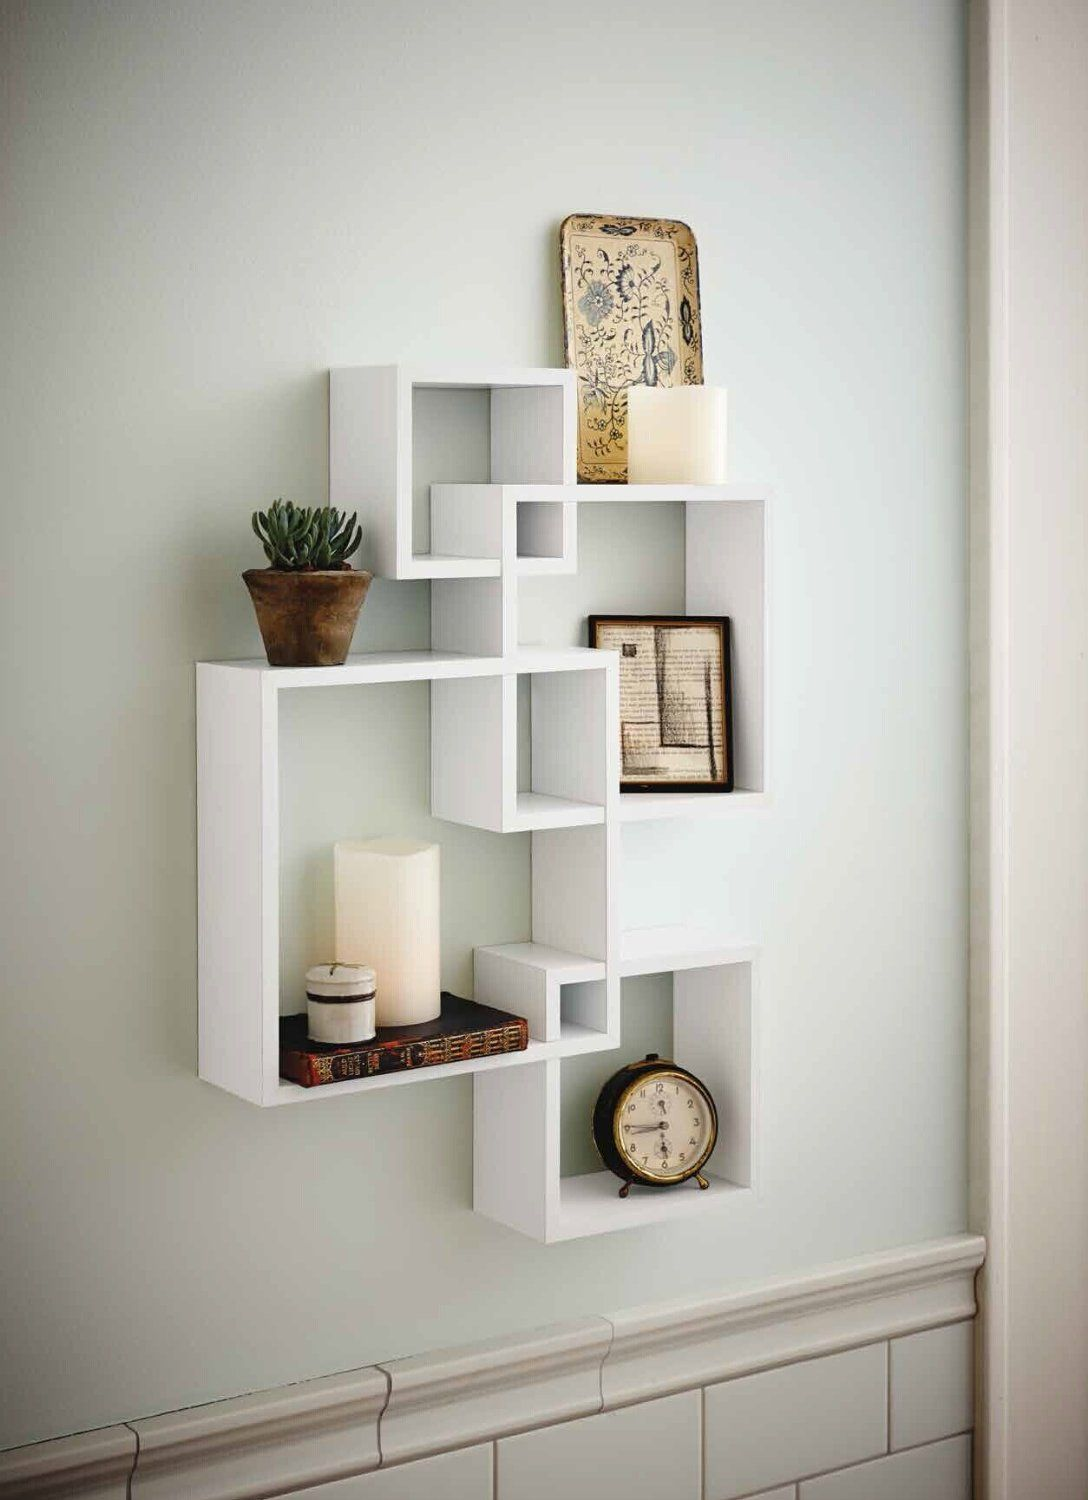 Shelving Solution Intersecting Decorative White Color Wall Shelf, Set of 2  Candles Included